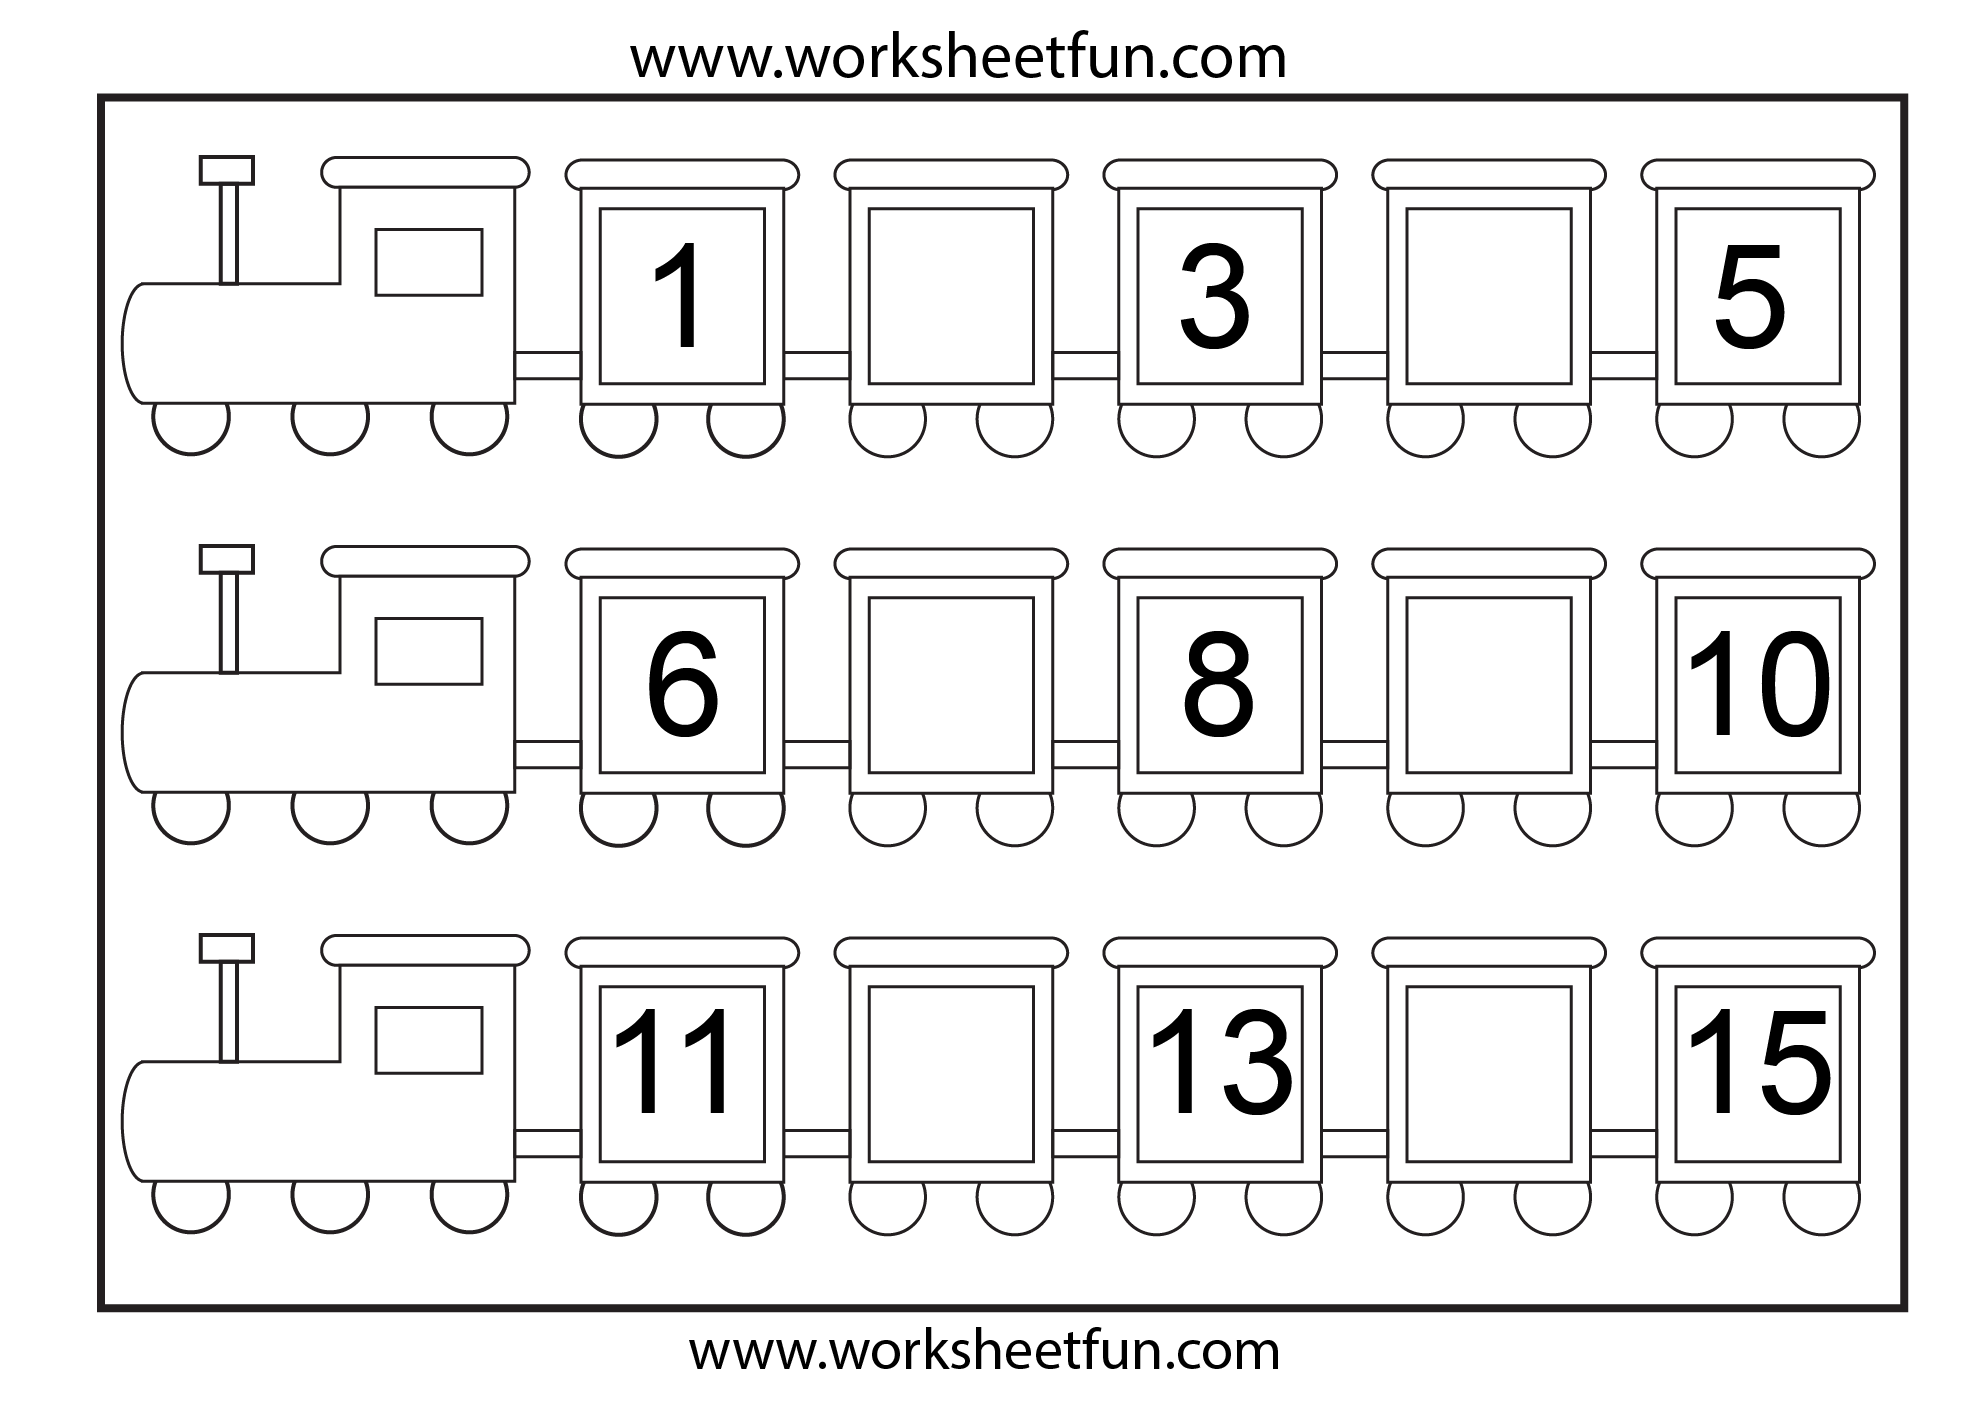 Preschool Worksheets Free Printable Worksheets Worksheetfun